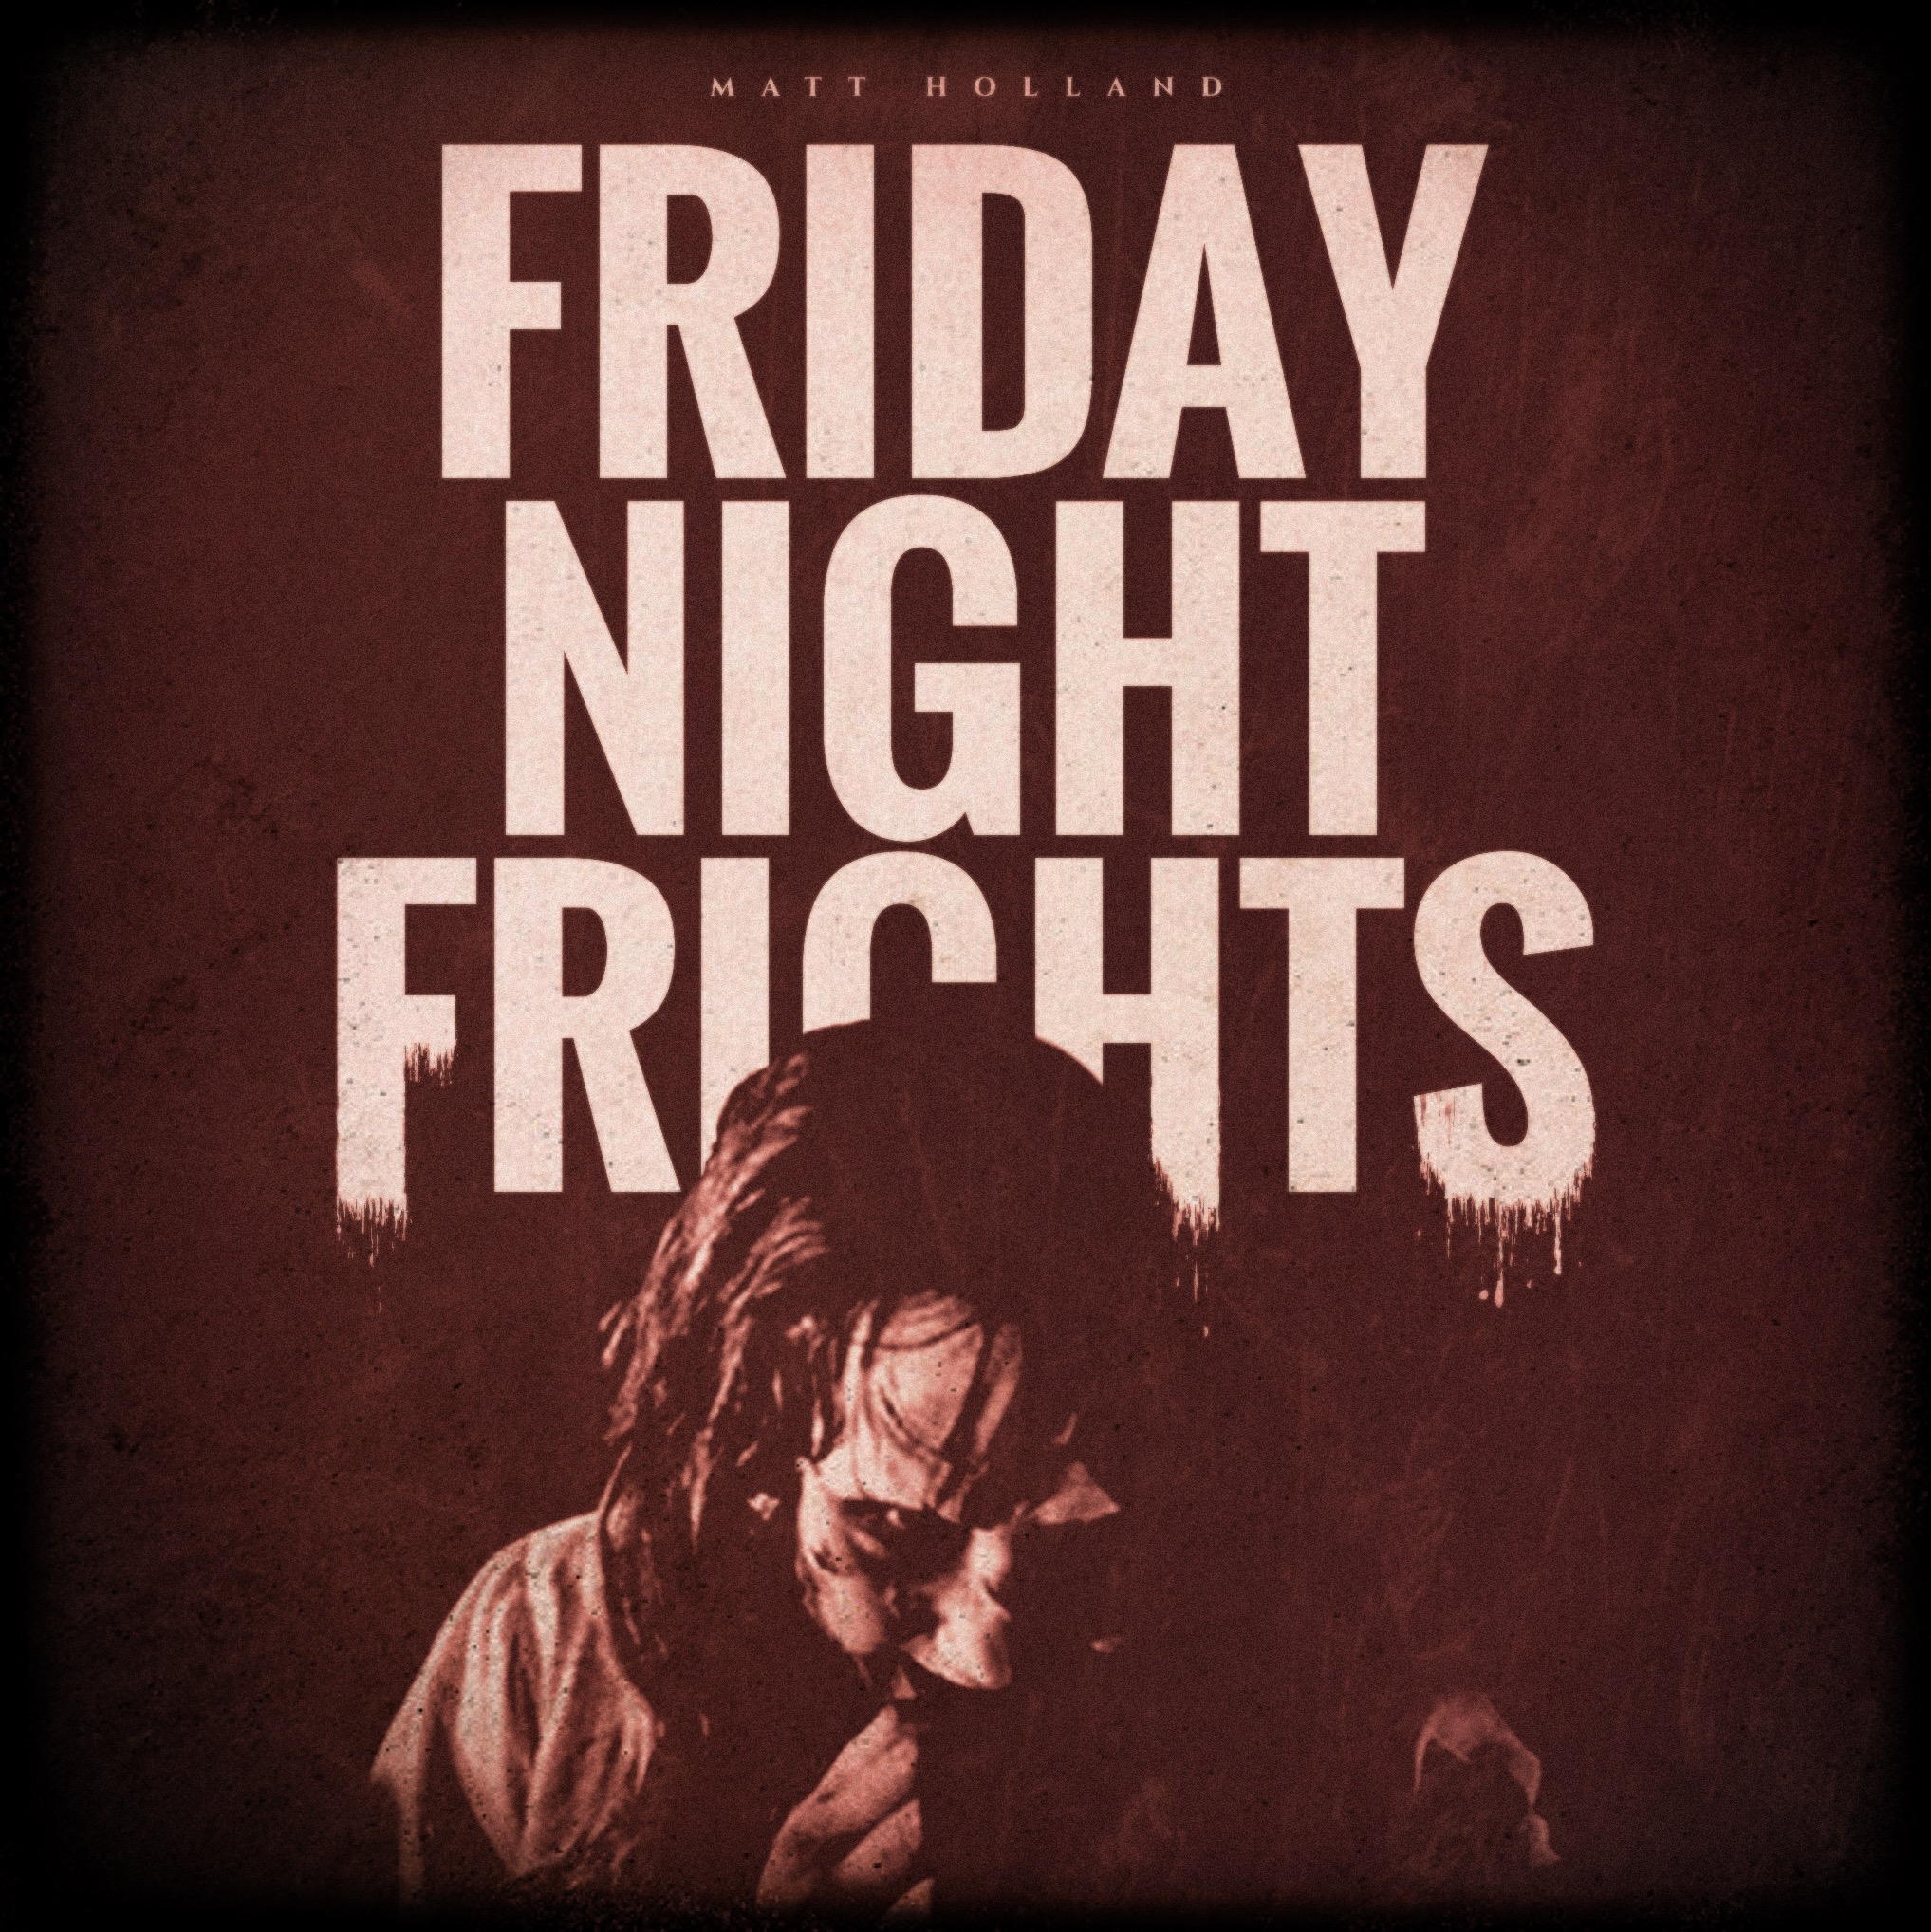 Friday Night Frights!!